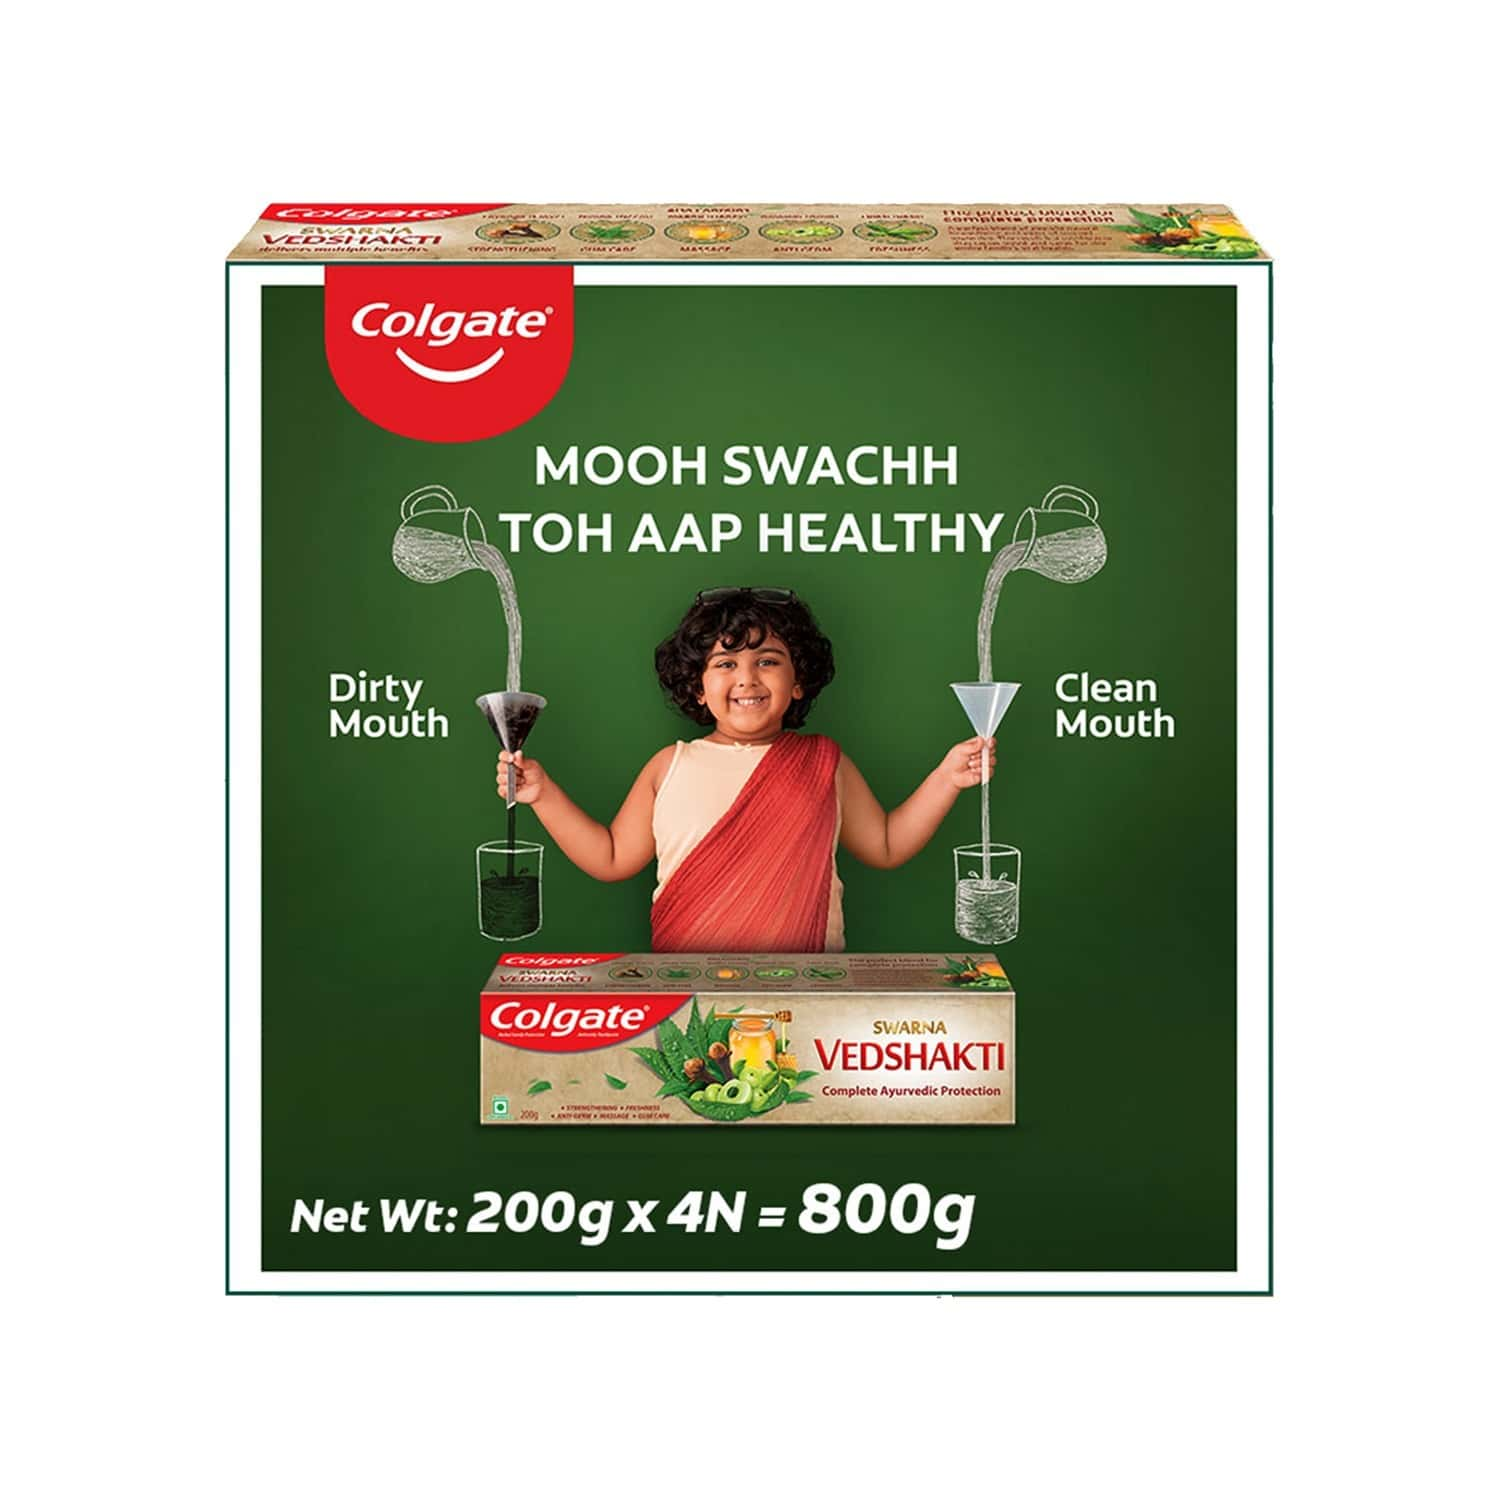 Colgate Swarna Vedshakti Ayurvedic Toothpaste, Anti-bacterial Paste For Whole Mouth Health, With Neem, Clove, And Honey, 200g X 4 (saver Pack) - 800g